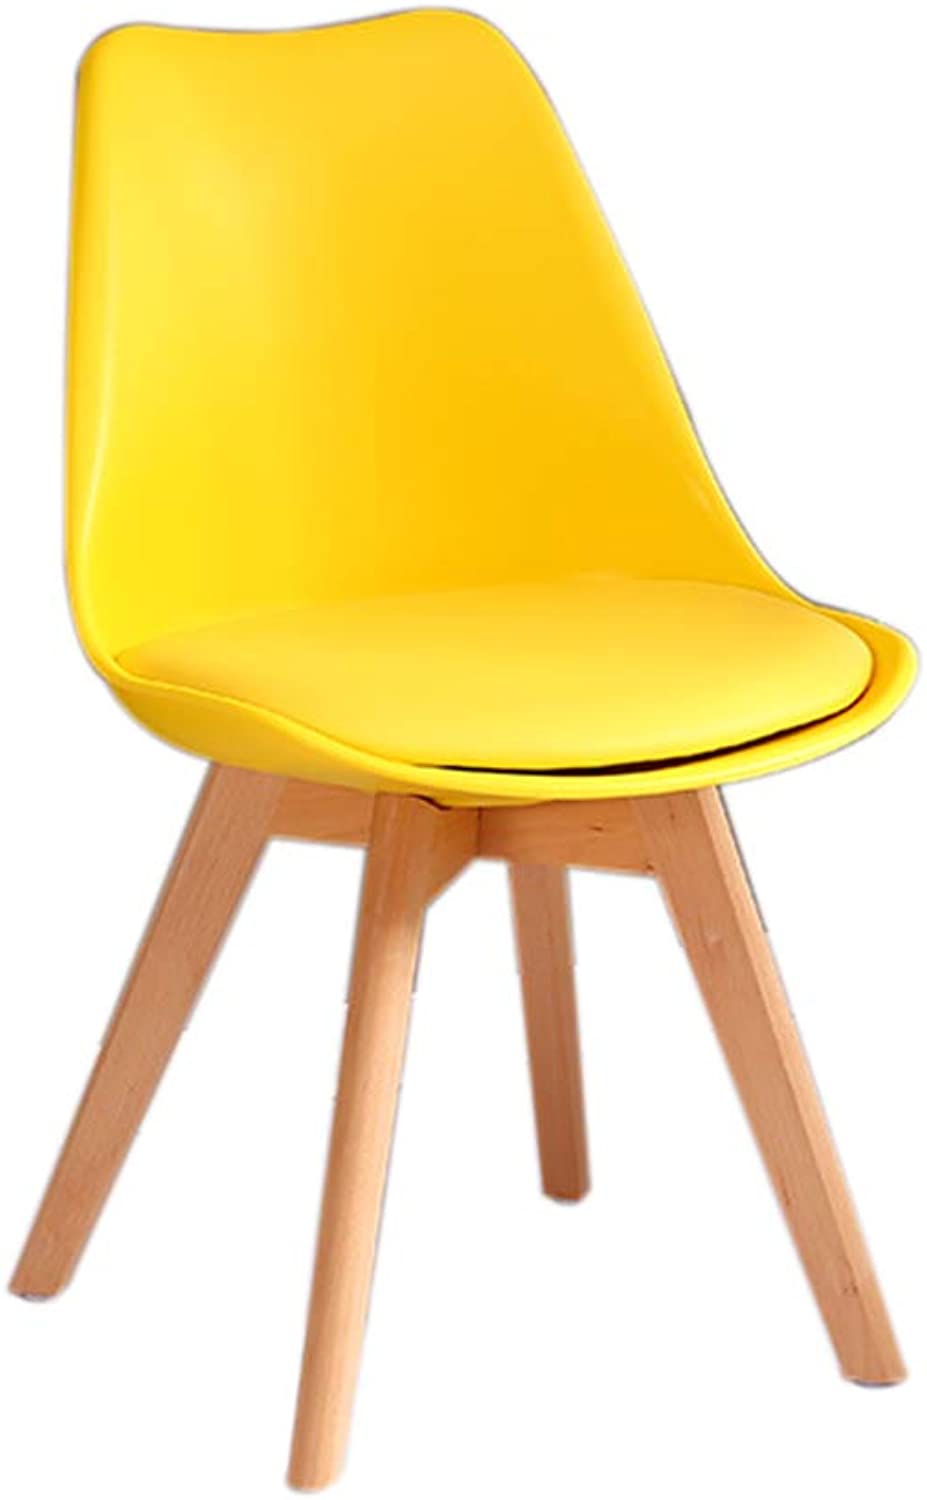 Chair - Multicolor Optional Portable Solid Wood Wooden Frame Anti-Stress Chair (color   Yellow)